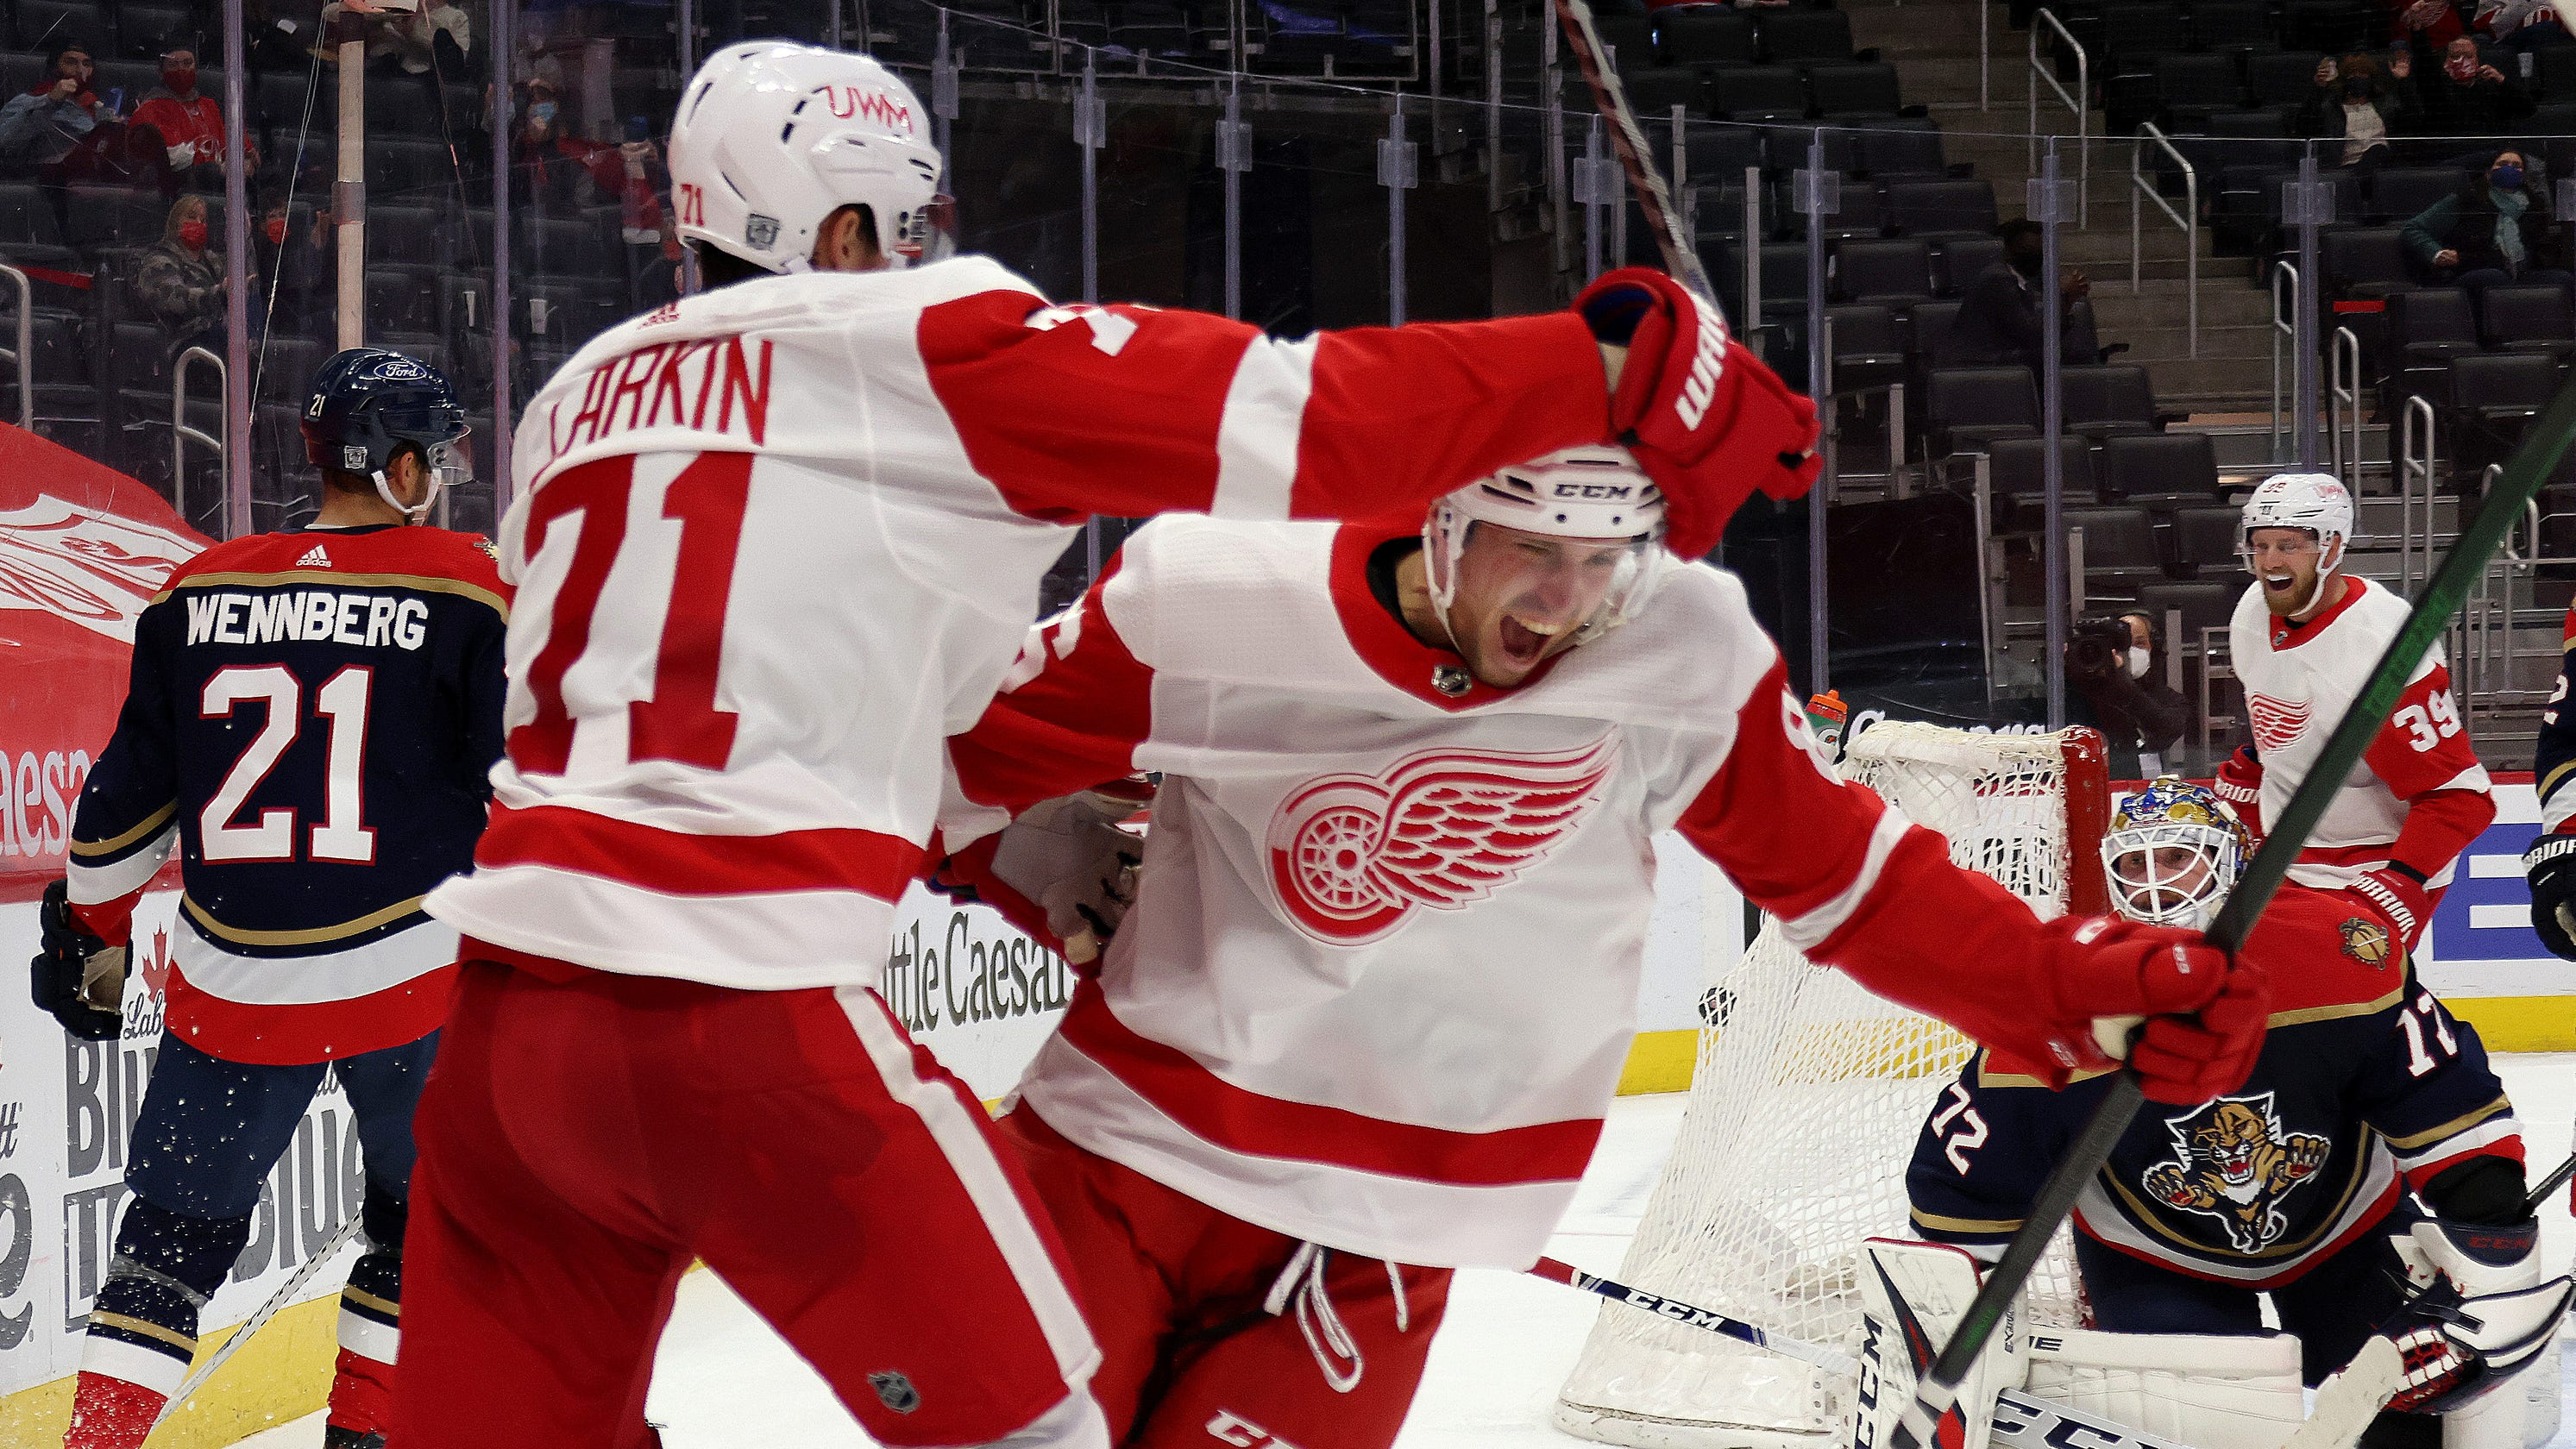 Detroit Red Wings respond after gut-punch losses on, off the ice; 'we showed up and battled' - Detroit Free Press